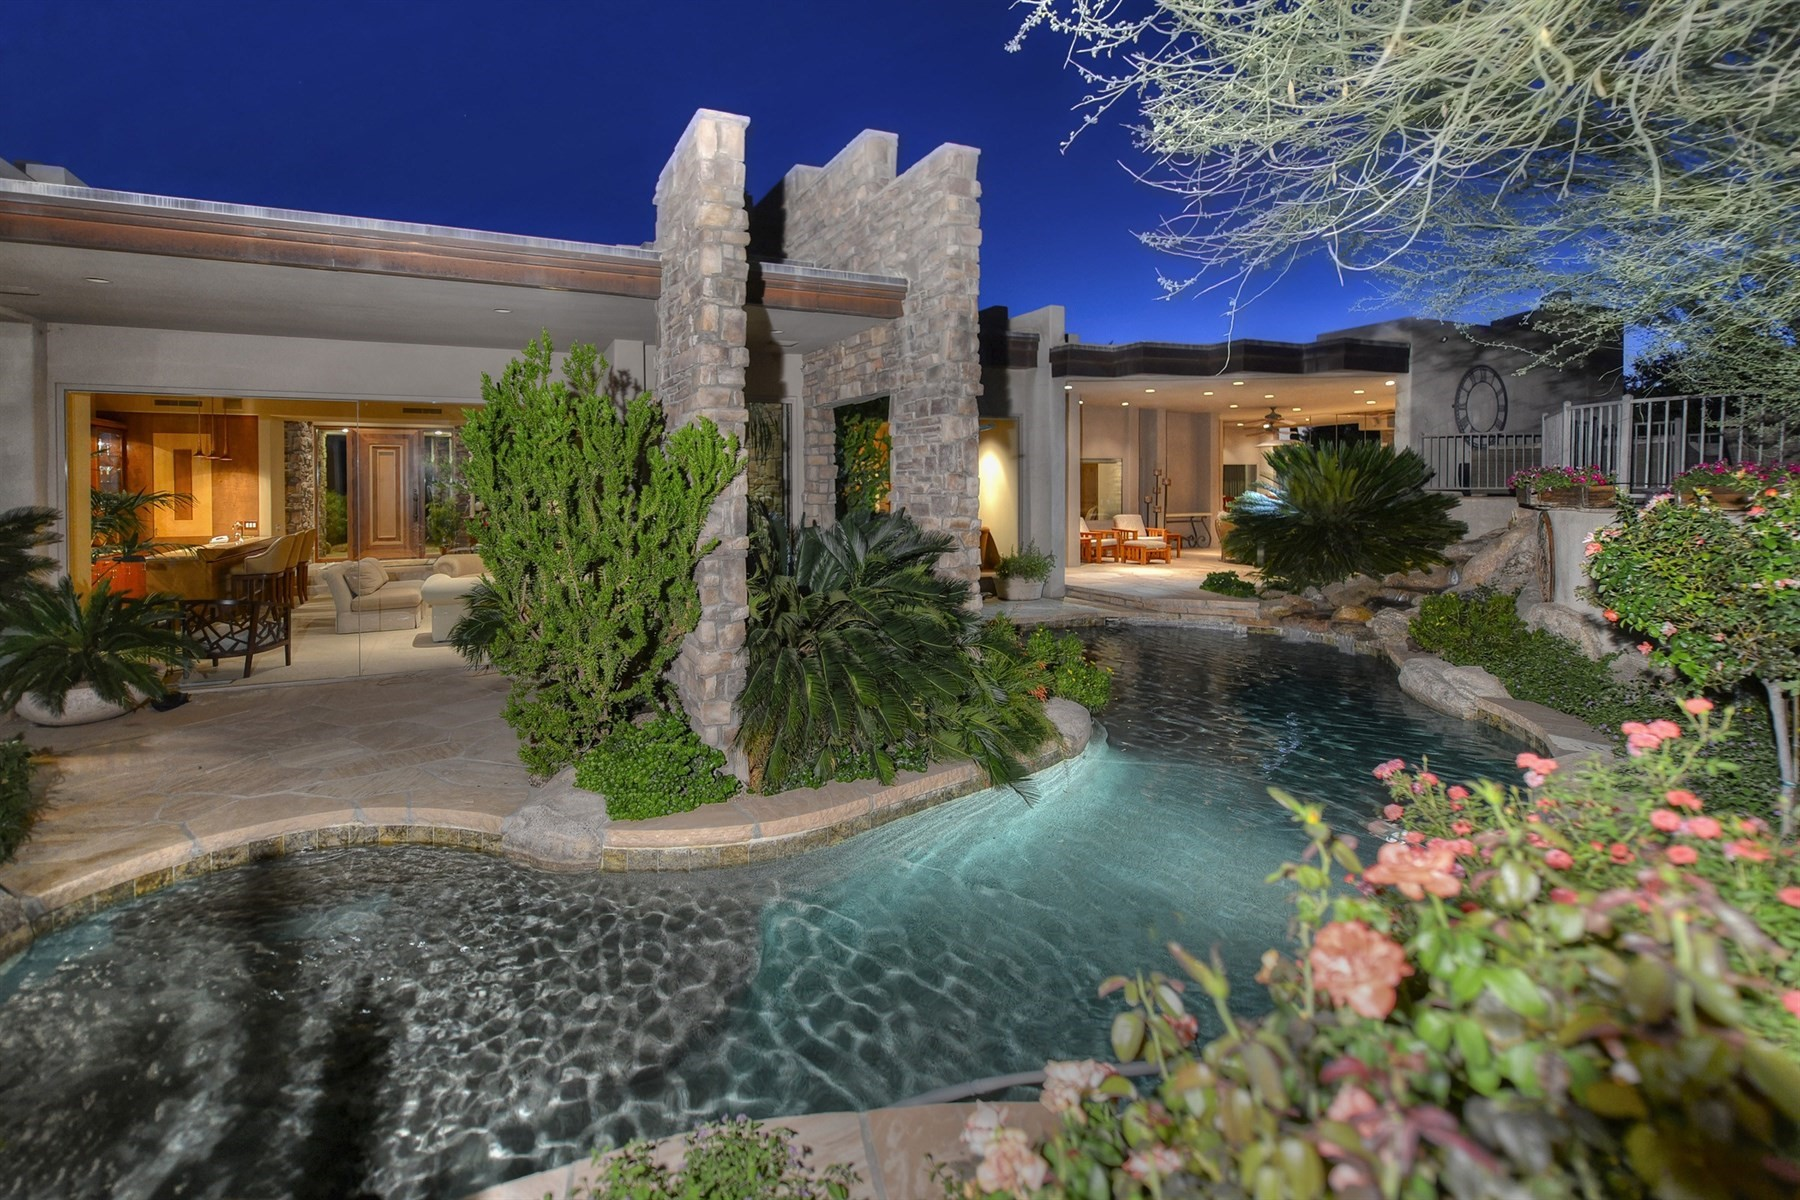 Villa per Vendita alle ore Stunning Soft Contemporary 27597 N 96th Pl Scottsdale, Arizona, 85262 Stati Uniti